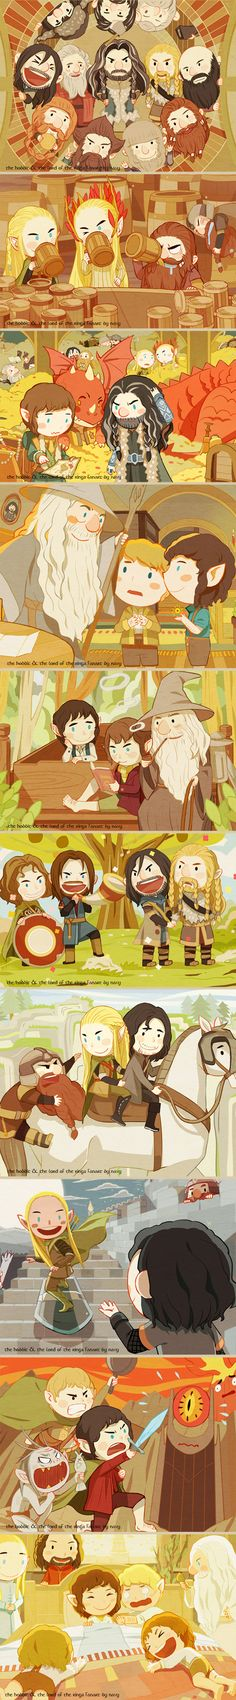 little LotR and tH by navy-locked on deviantART #hobbit #fanart #lordoftherings